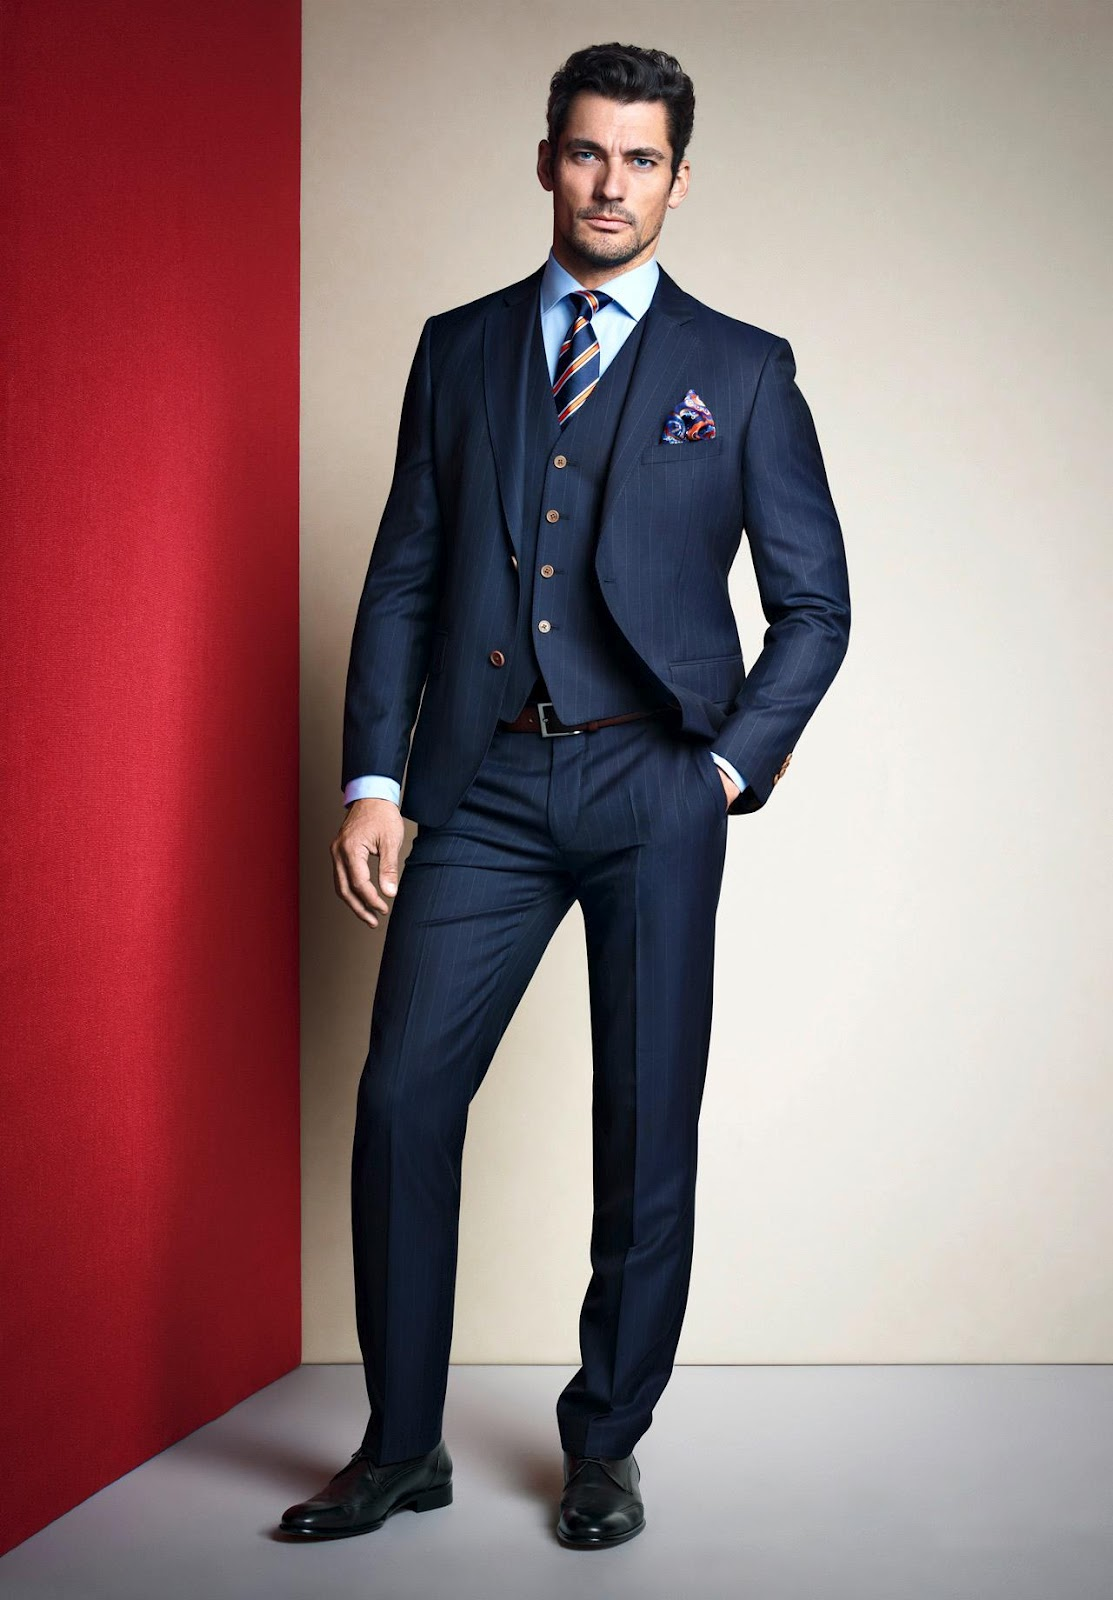 Why no love for the three piece suit? | Page 18 | Styleforum